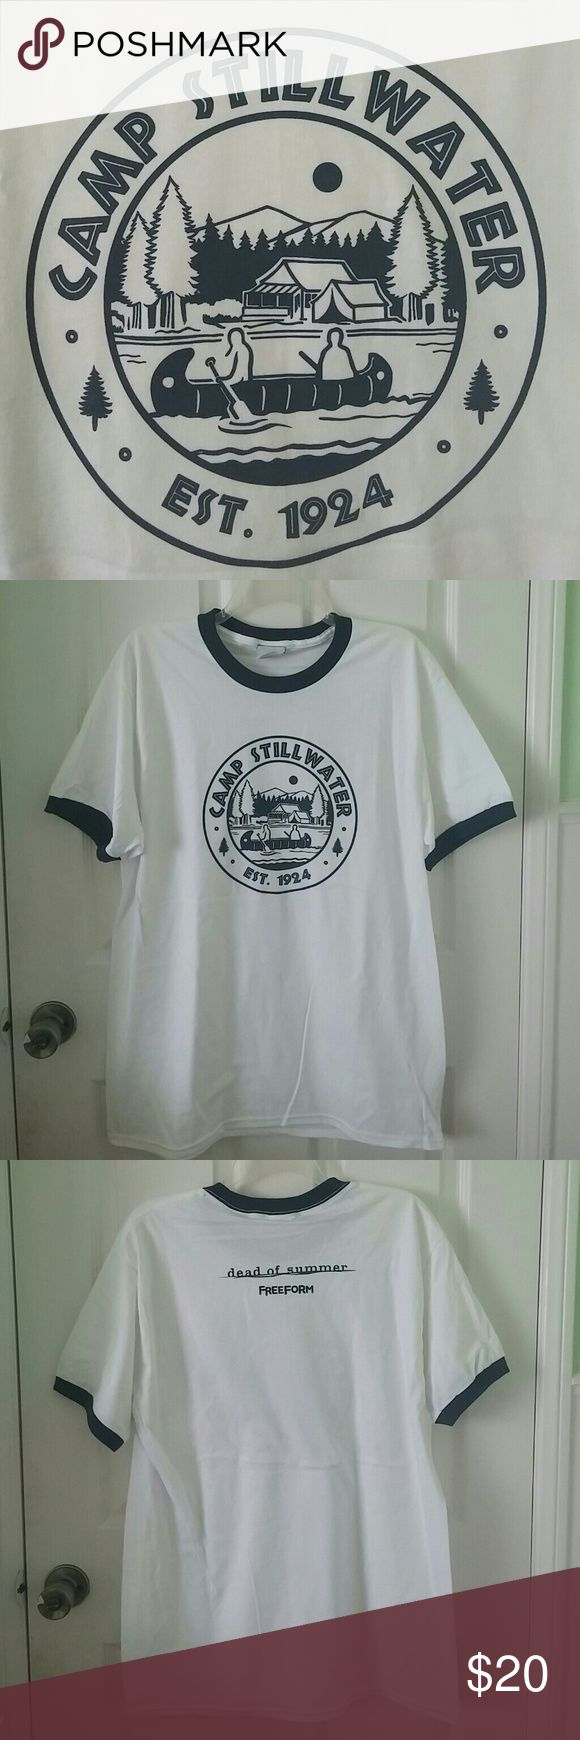 Camp Stillwater T-shirt Dead of Summer size Large Limited release of Dead of Summer Camp Stillwater T-Shirt. White with navy blue font in size large. Never worn, brand new! Bundle and save! Dead of Summer Tops Tees - Short Sleeve